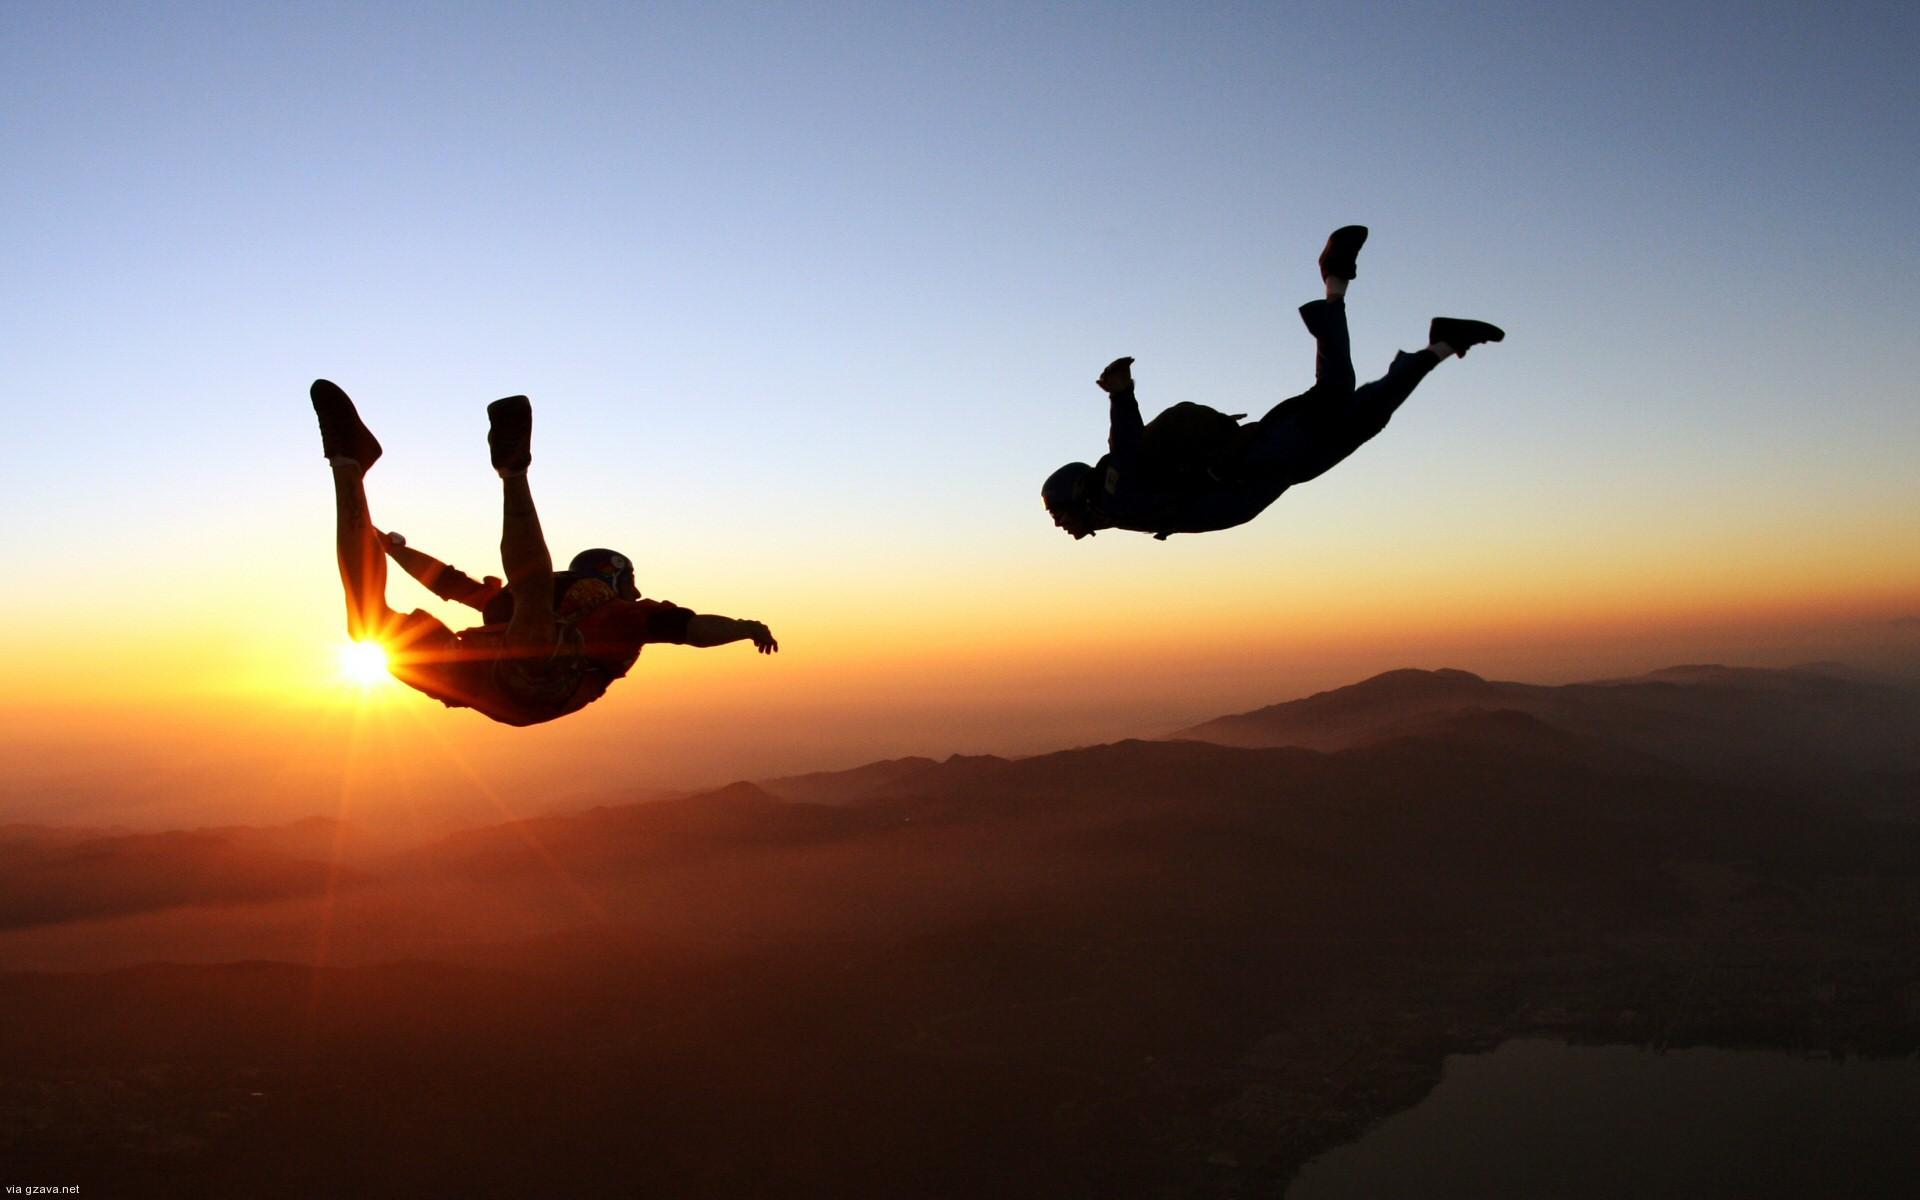 Cool-Skydiving-Desktop-Wallpaper-With-Sunset-View